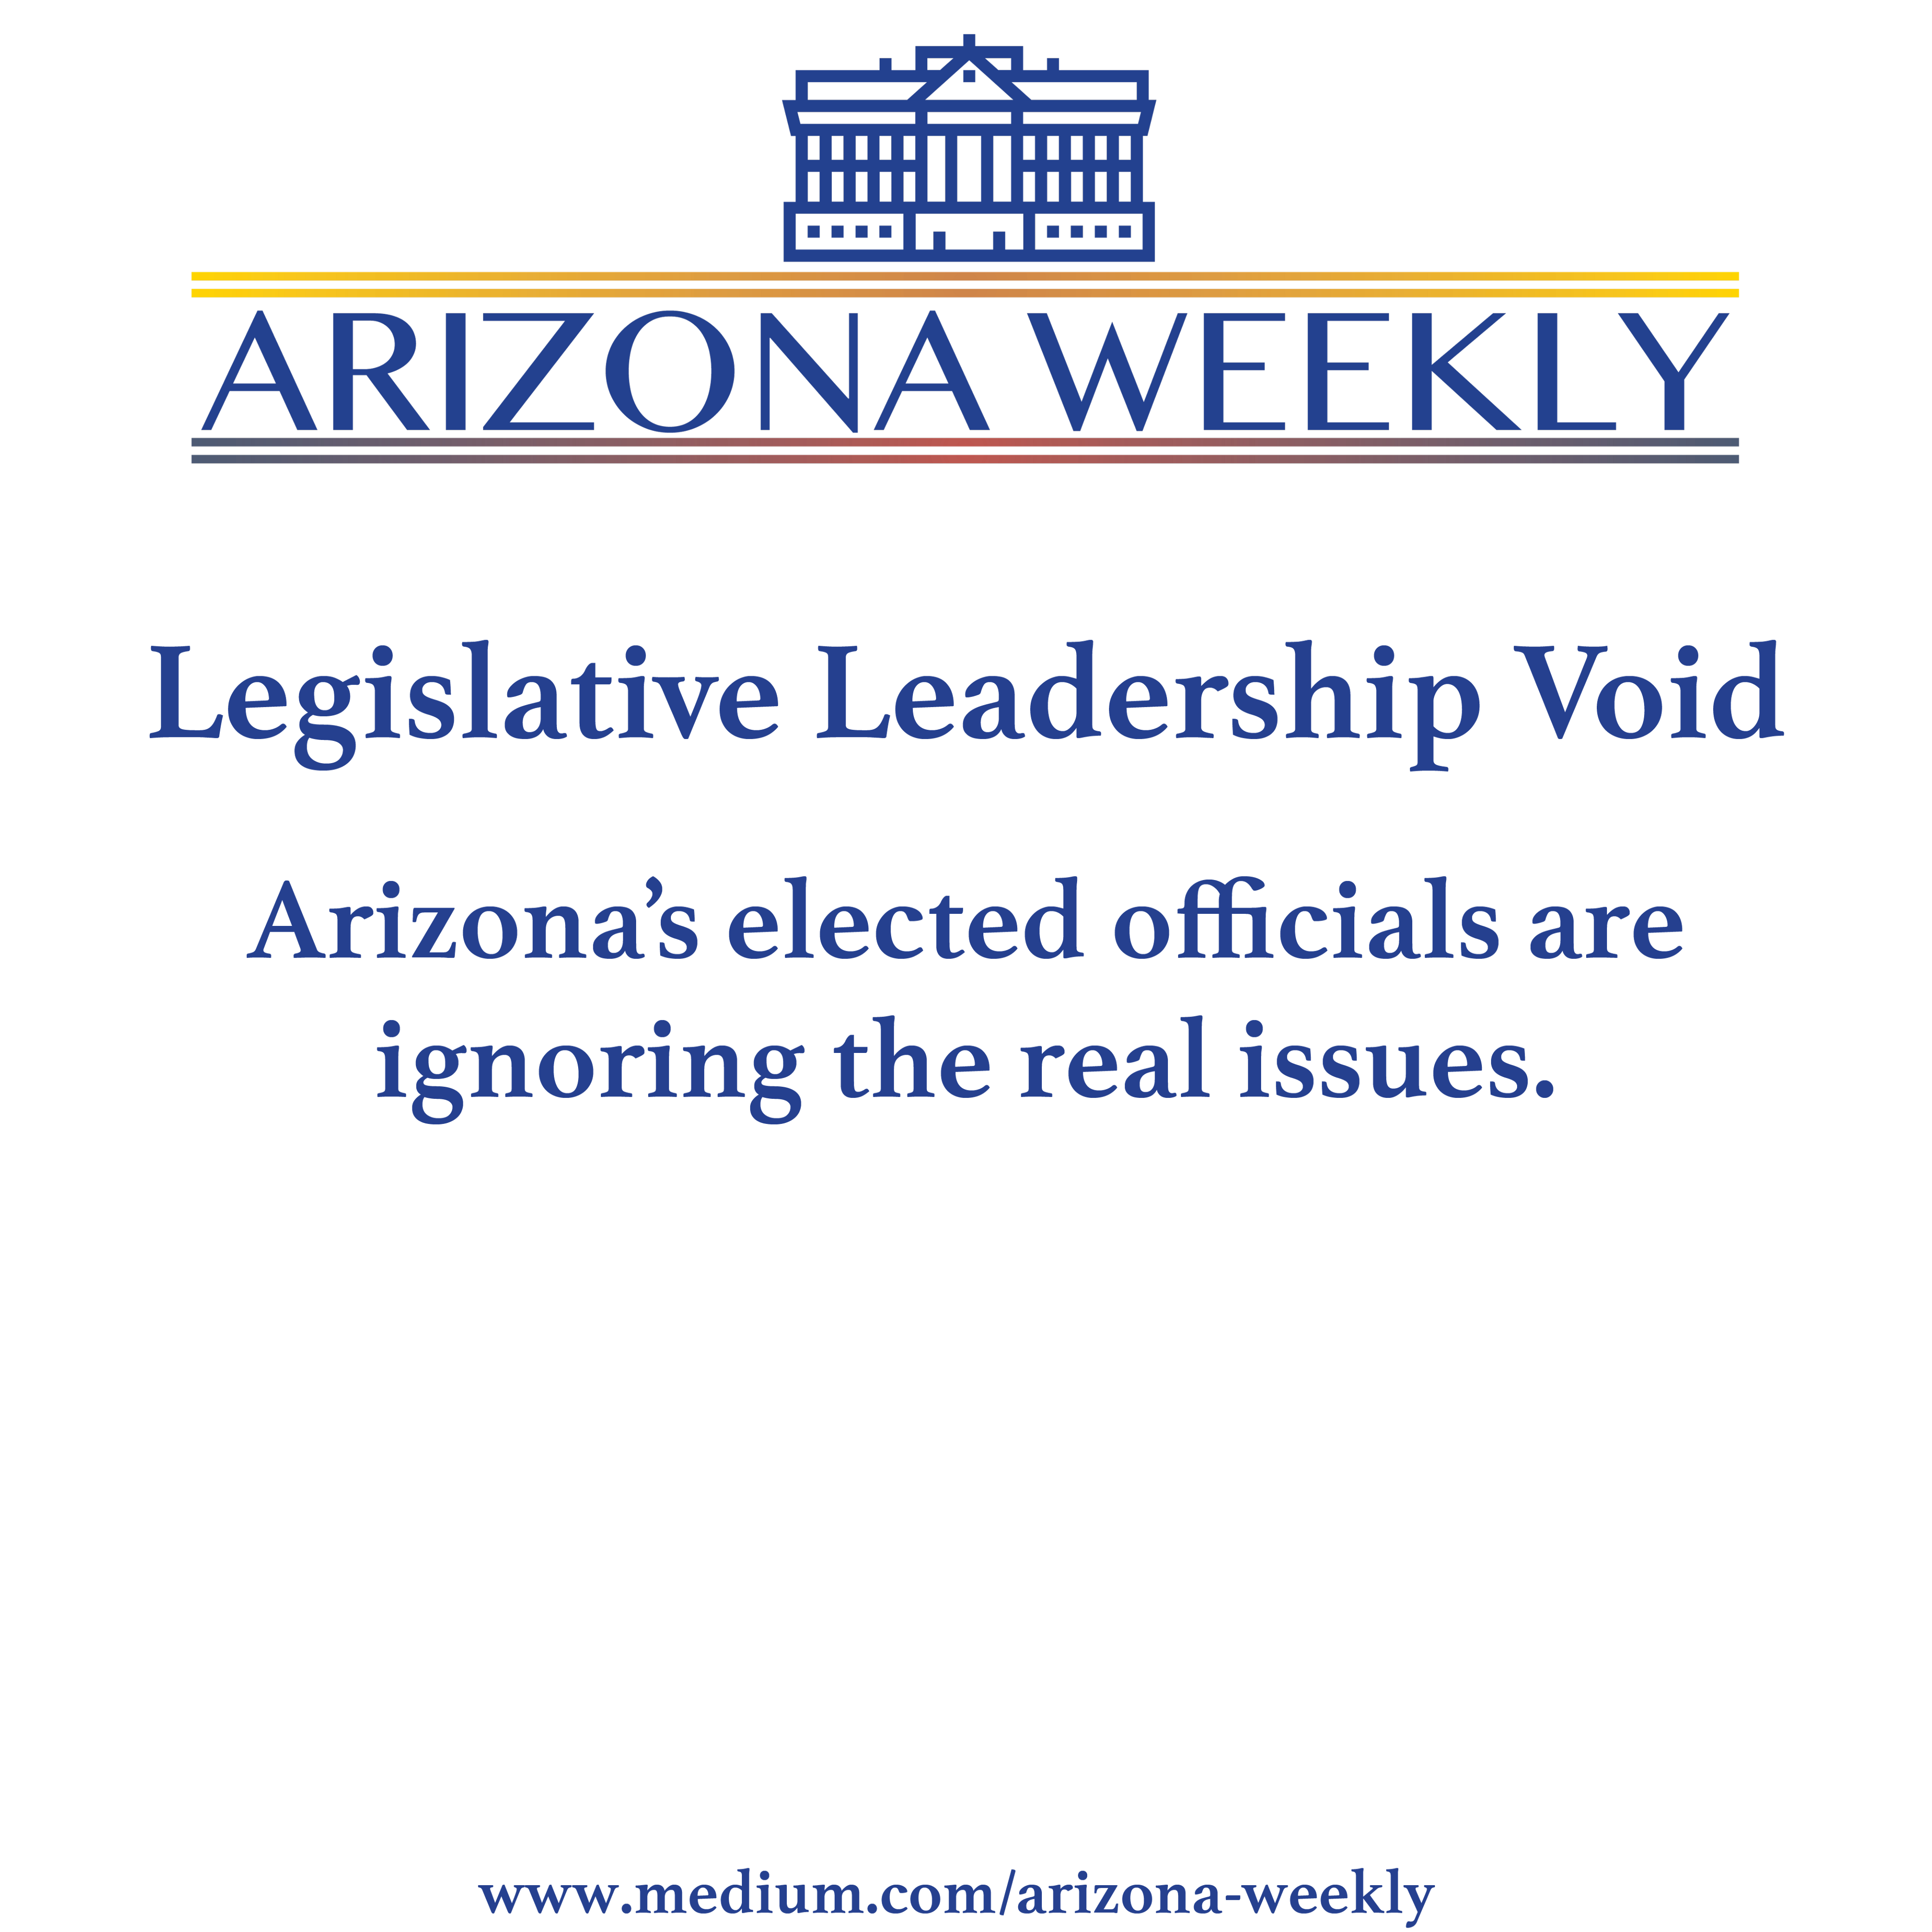 Arizona Weekly, Arizona, Democrat, Arizona Democratic Party, ADP, AZ, Phoenix, Ryan Starzyk, Dr. Ryan Starzyk, Dr. Ryan